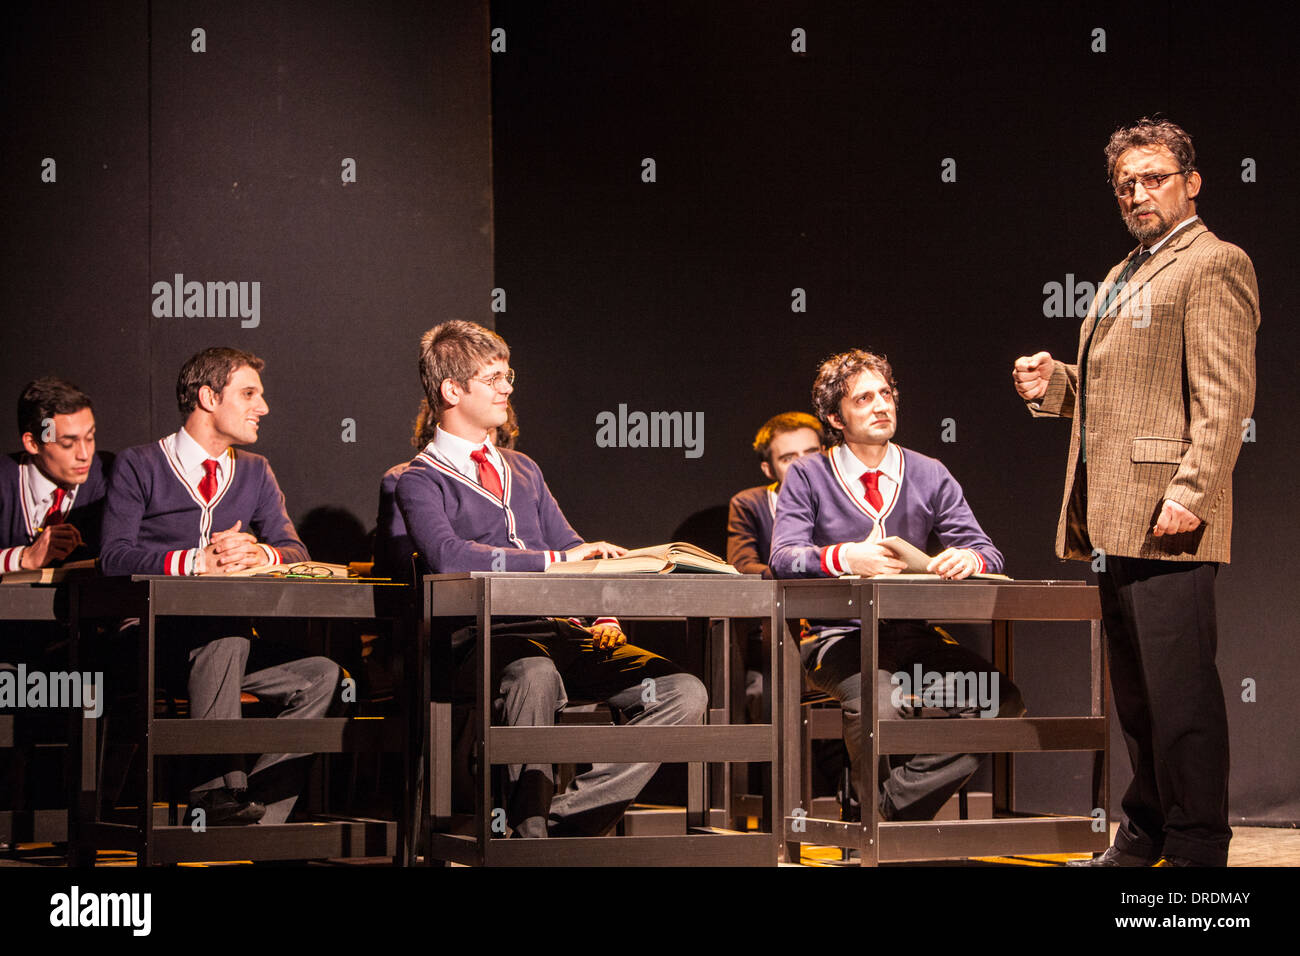 carpe diem in dead poets society The dead poets society the dead poets society is a movie directed by peter weir that explores the question and theme of happiness in life throughout the movie, an observant teacher in love with teaching, played by robin williams, helps a group of young people take a step forward in their lives and not let themselves be another in the masses he encourages them to make their existence something special.